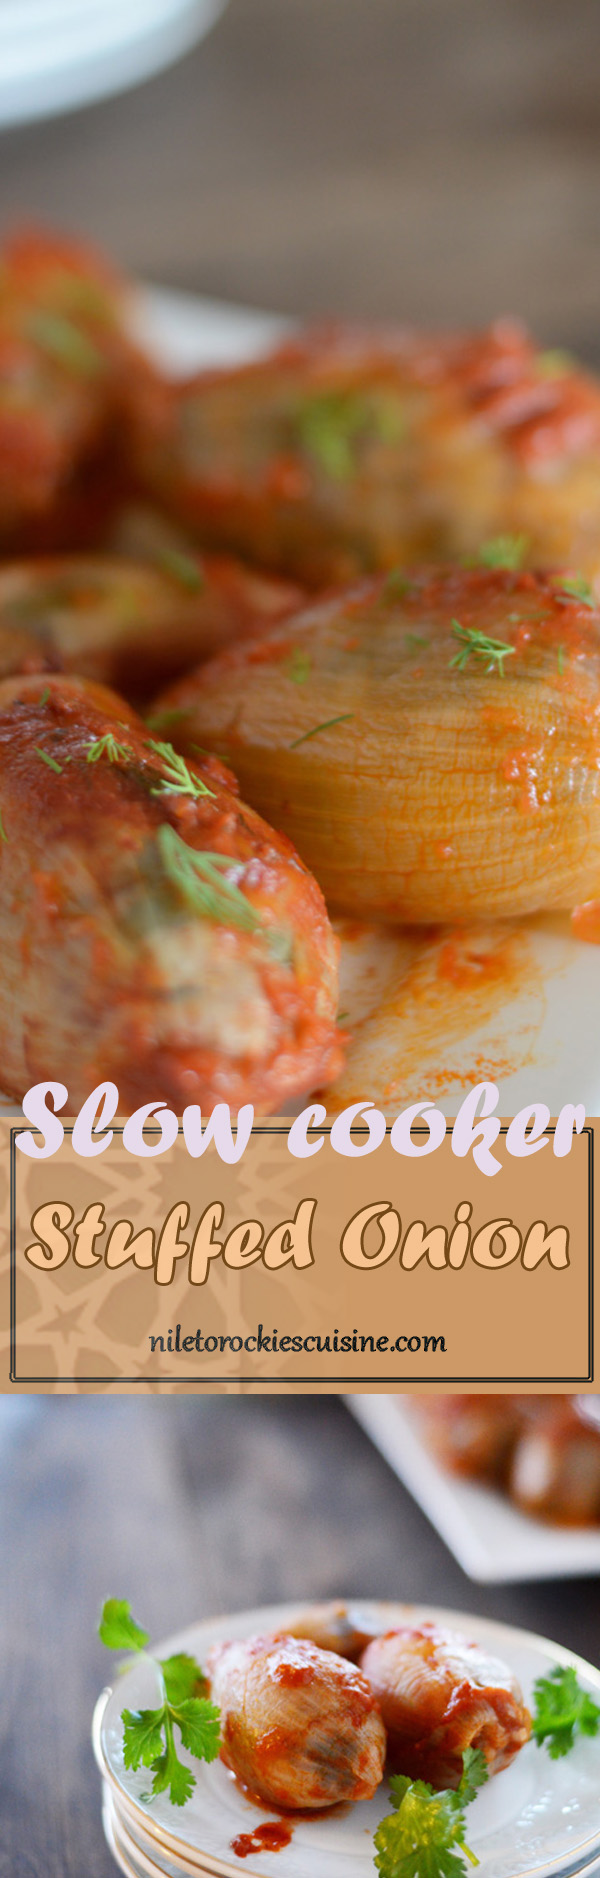 If you've never heard of stuffed onion in slow cooker, or if you have never been a fan of onions, beware that these chubby little gems will make you a convert. CrockPot Stuffed Onions are simple stuffed onion shells, slow cooked to perfection in tomato sauce and served as a one dish meal. Perfect fall/winter comfort food, although I don't mind having this anytime of the year